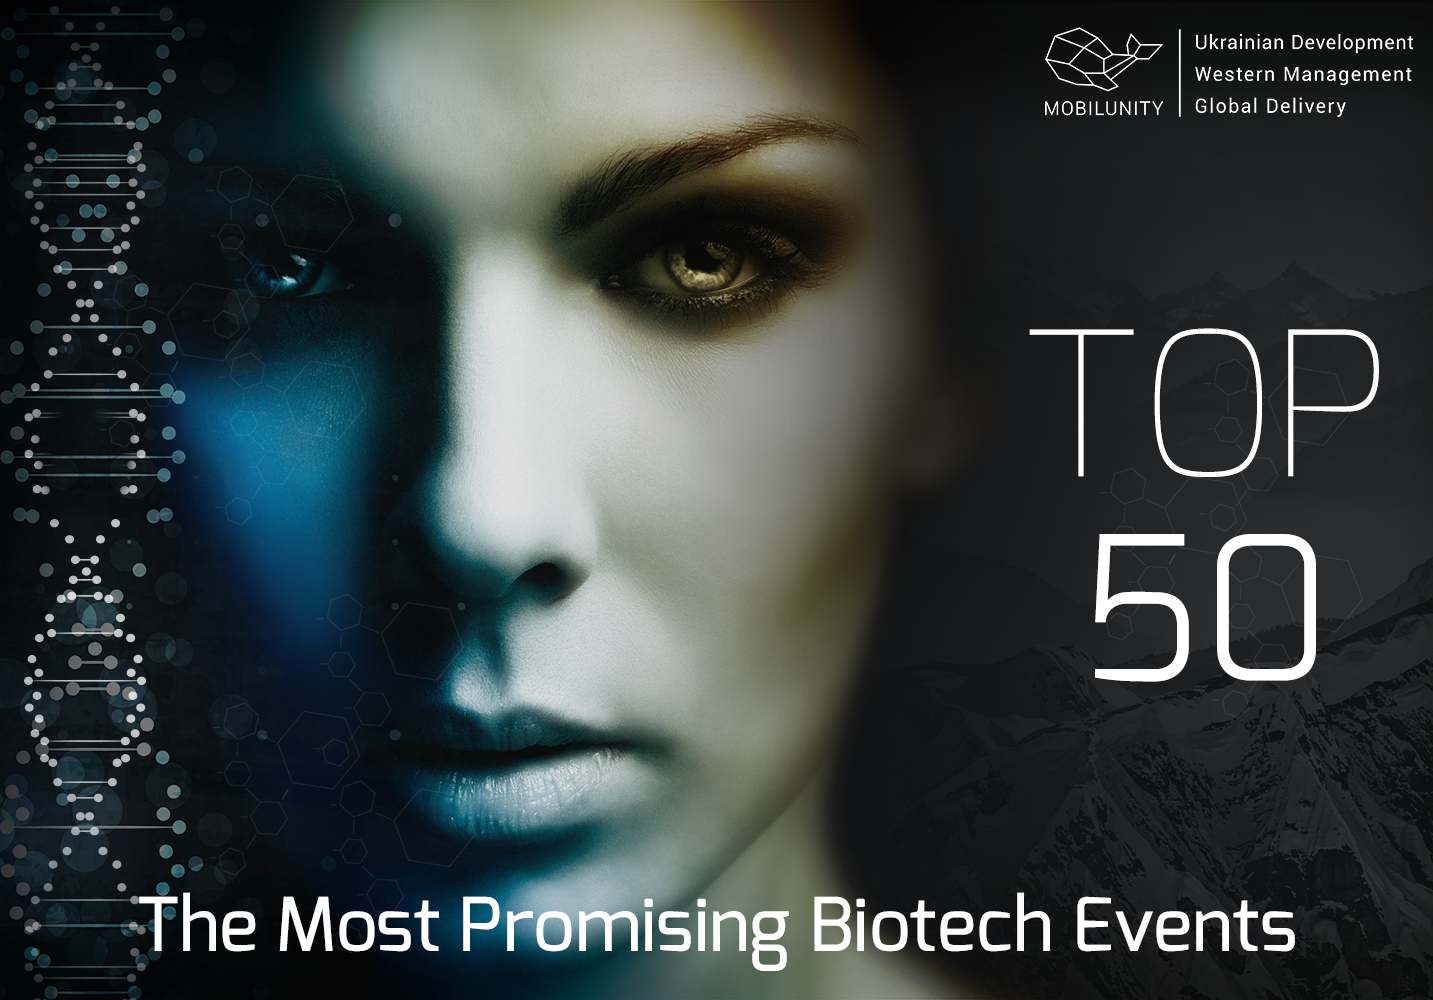 TOP 50 Upcoming Biotech Conferences Planned in 2017